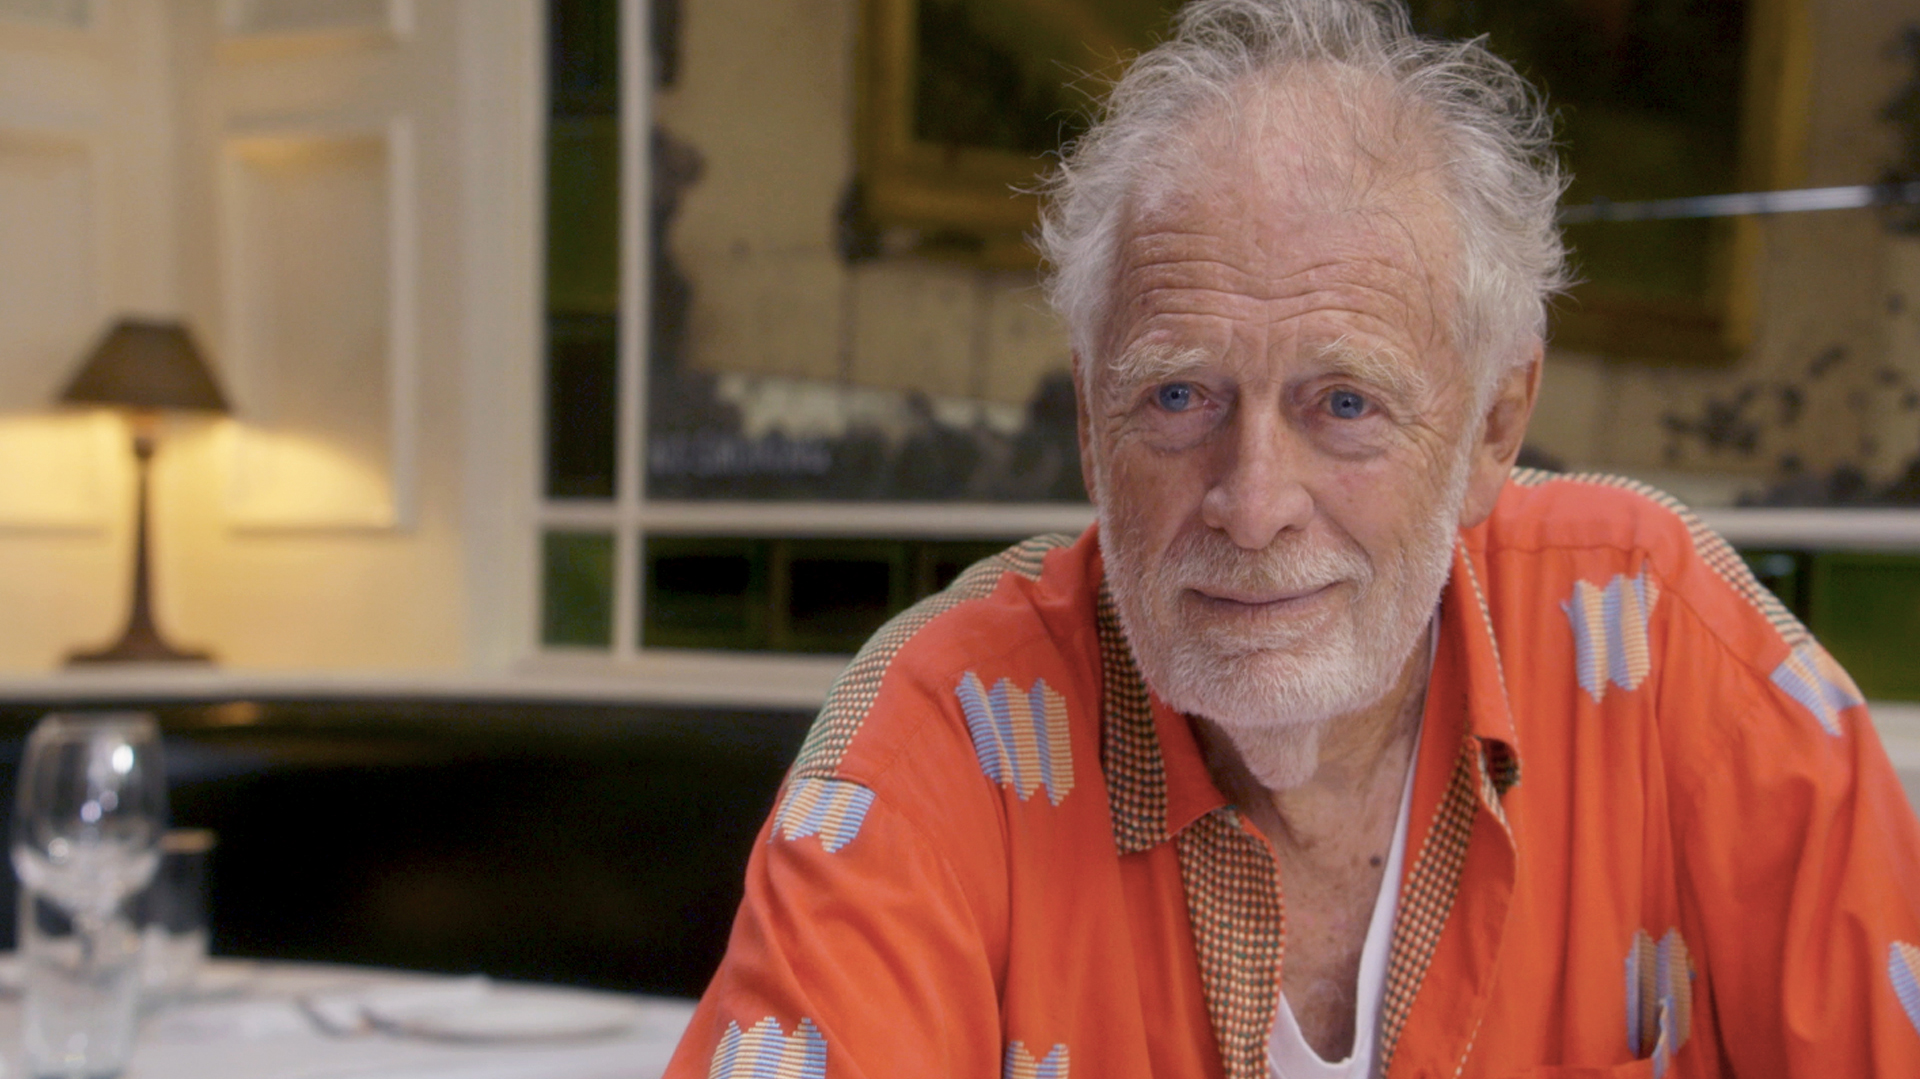 CHRIS blackwell at the beatrice